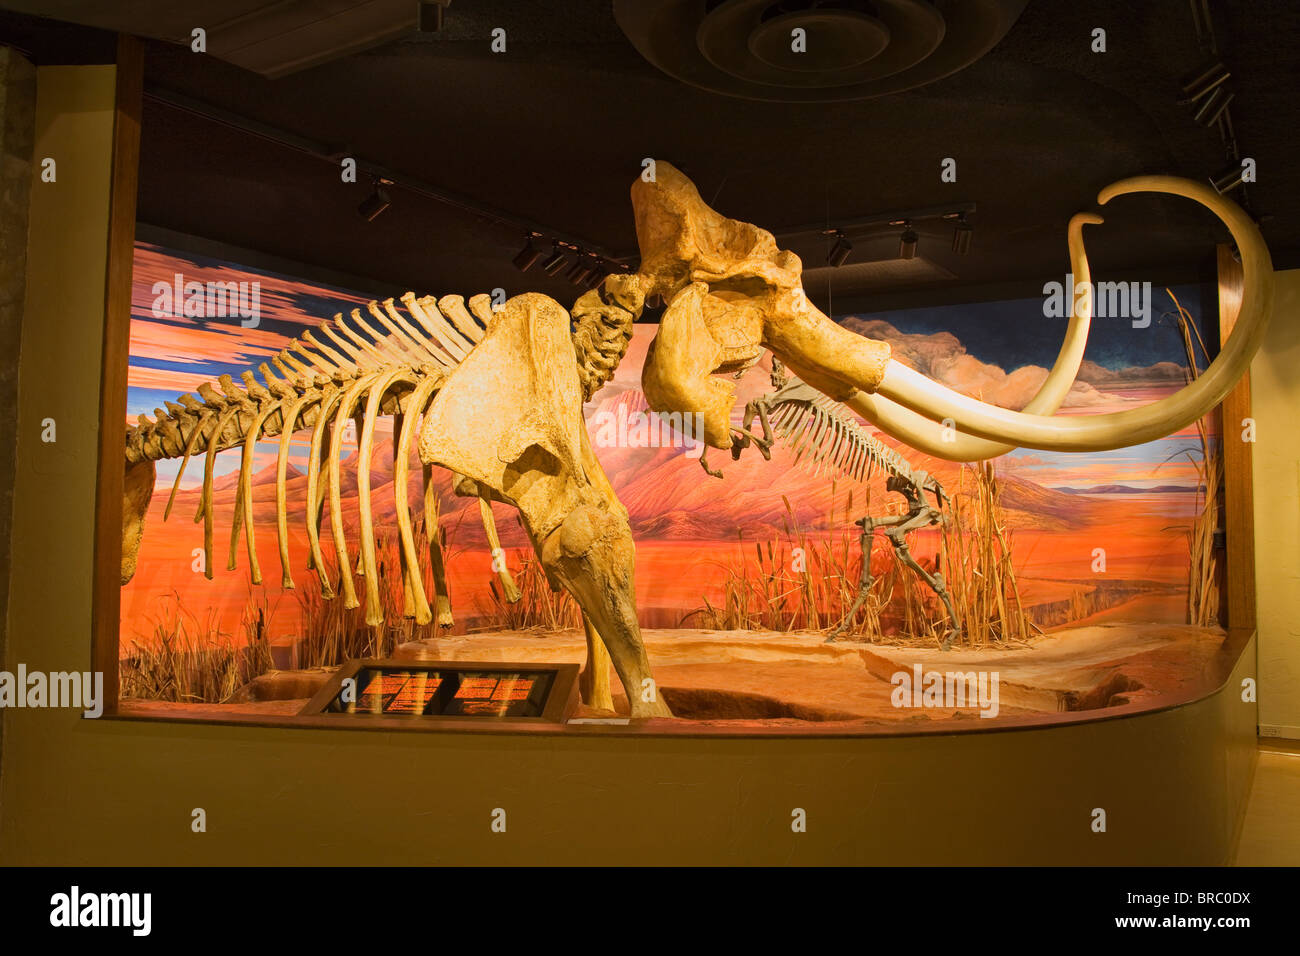 Mammoth skeleton from the Pleistocene Ice Age at the Nevada State Museum, Carson City, Nevada, USA - Stock Image